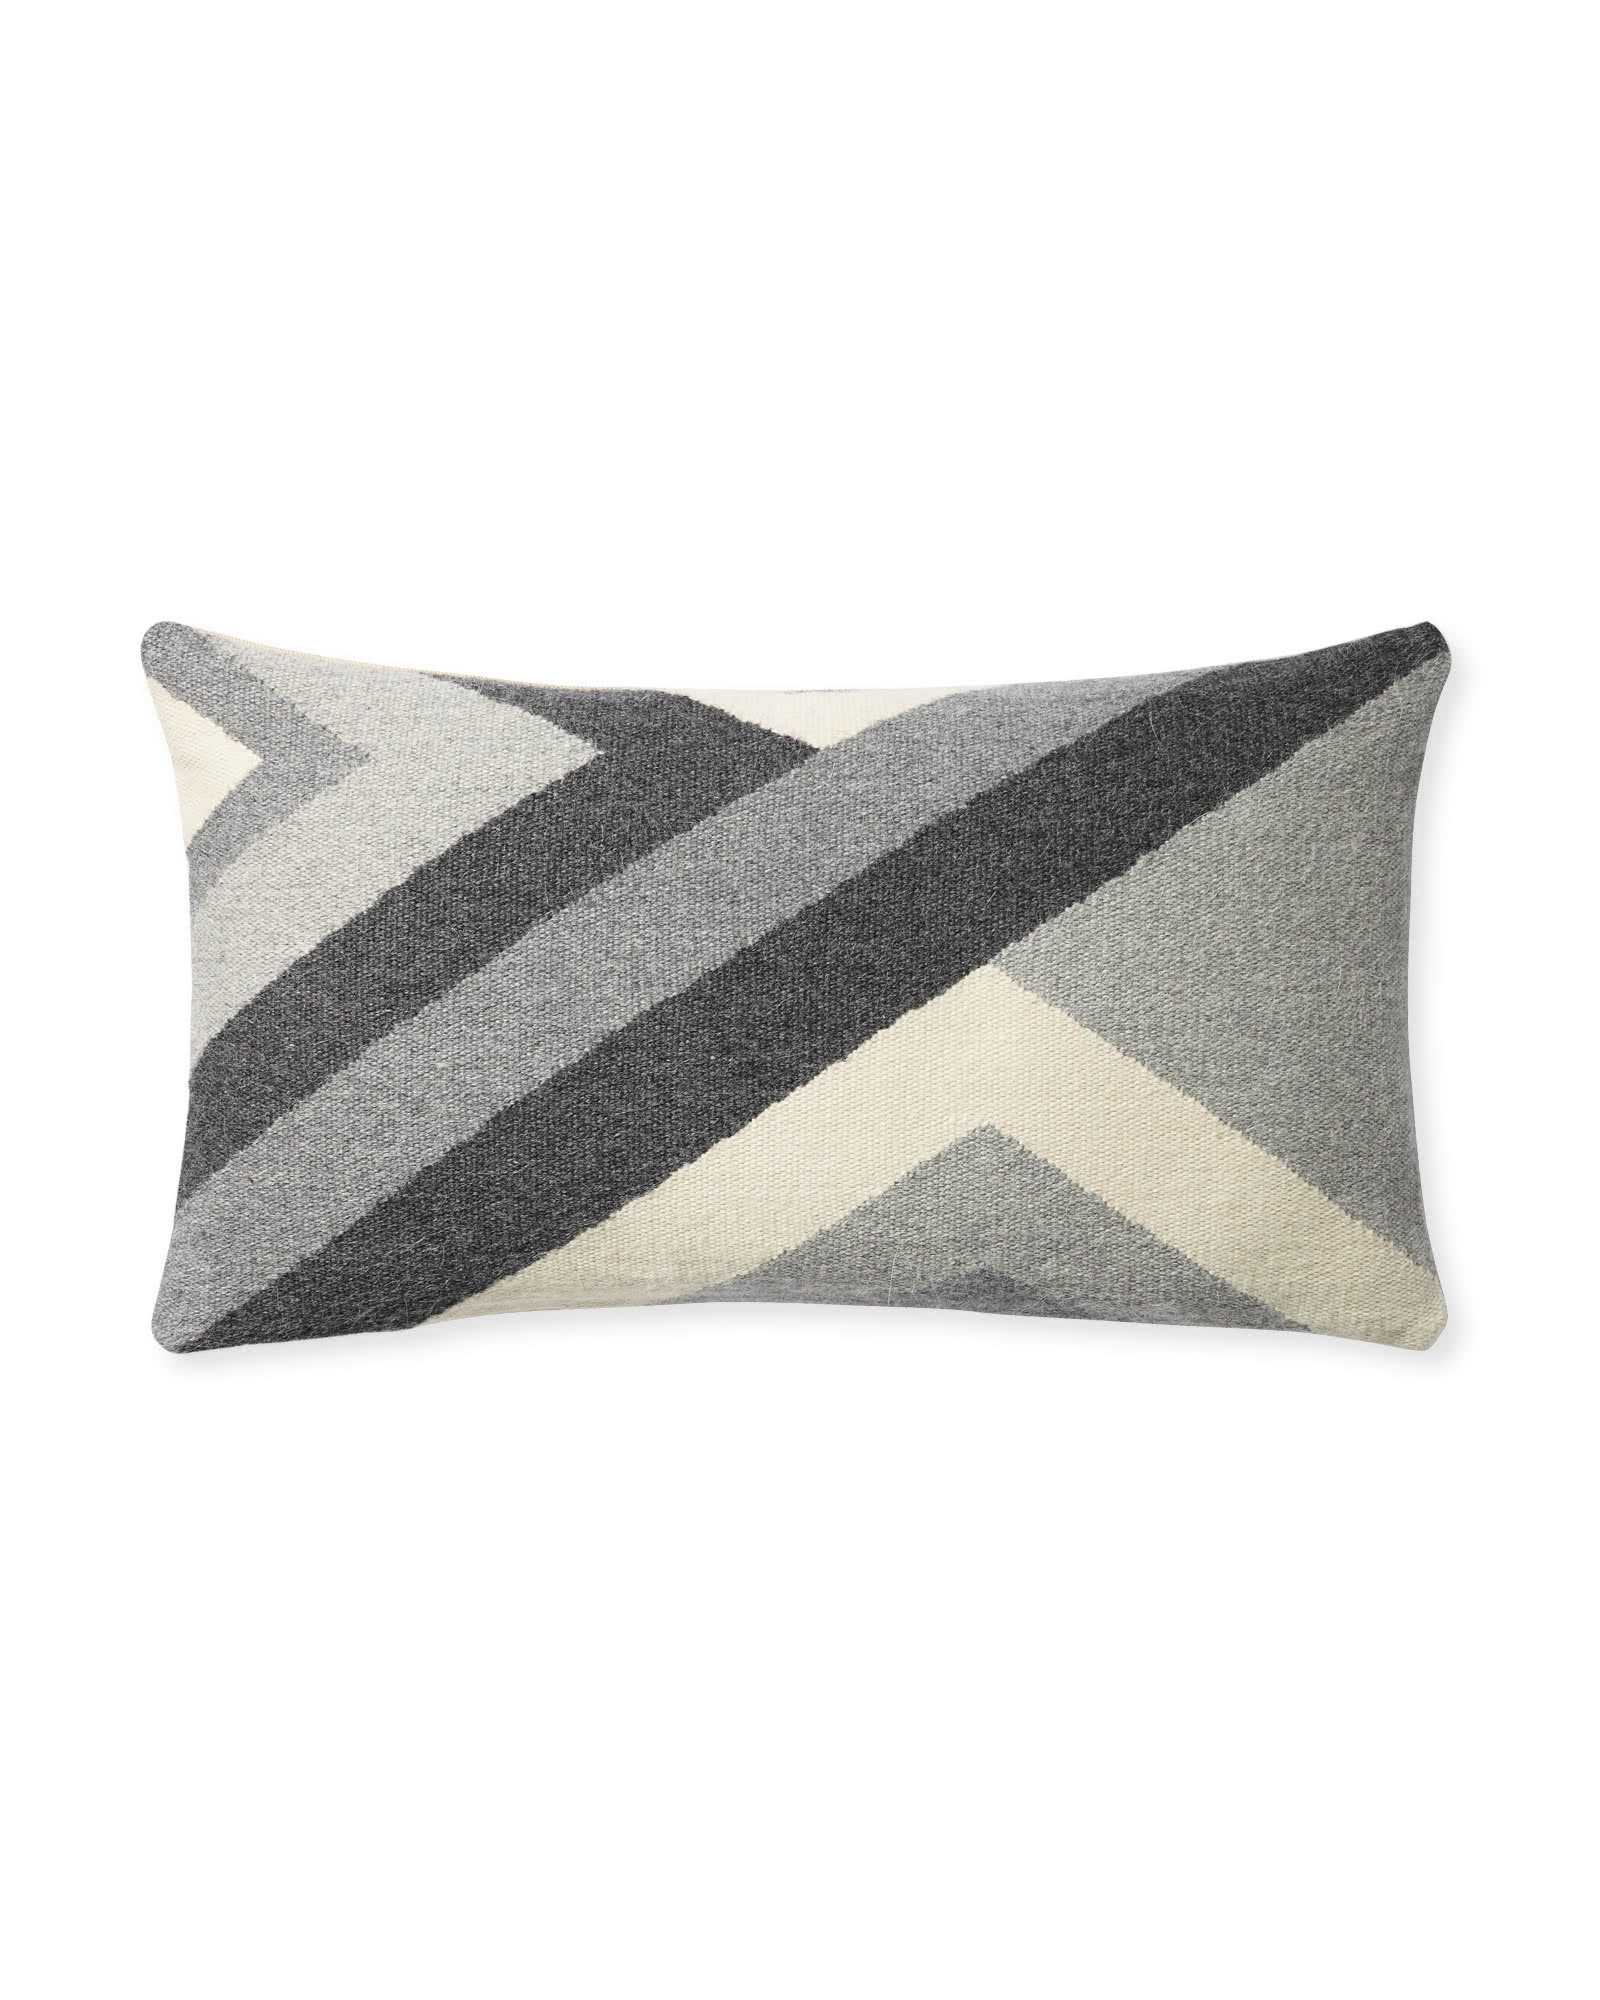 Devon Pillow Cover